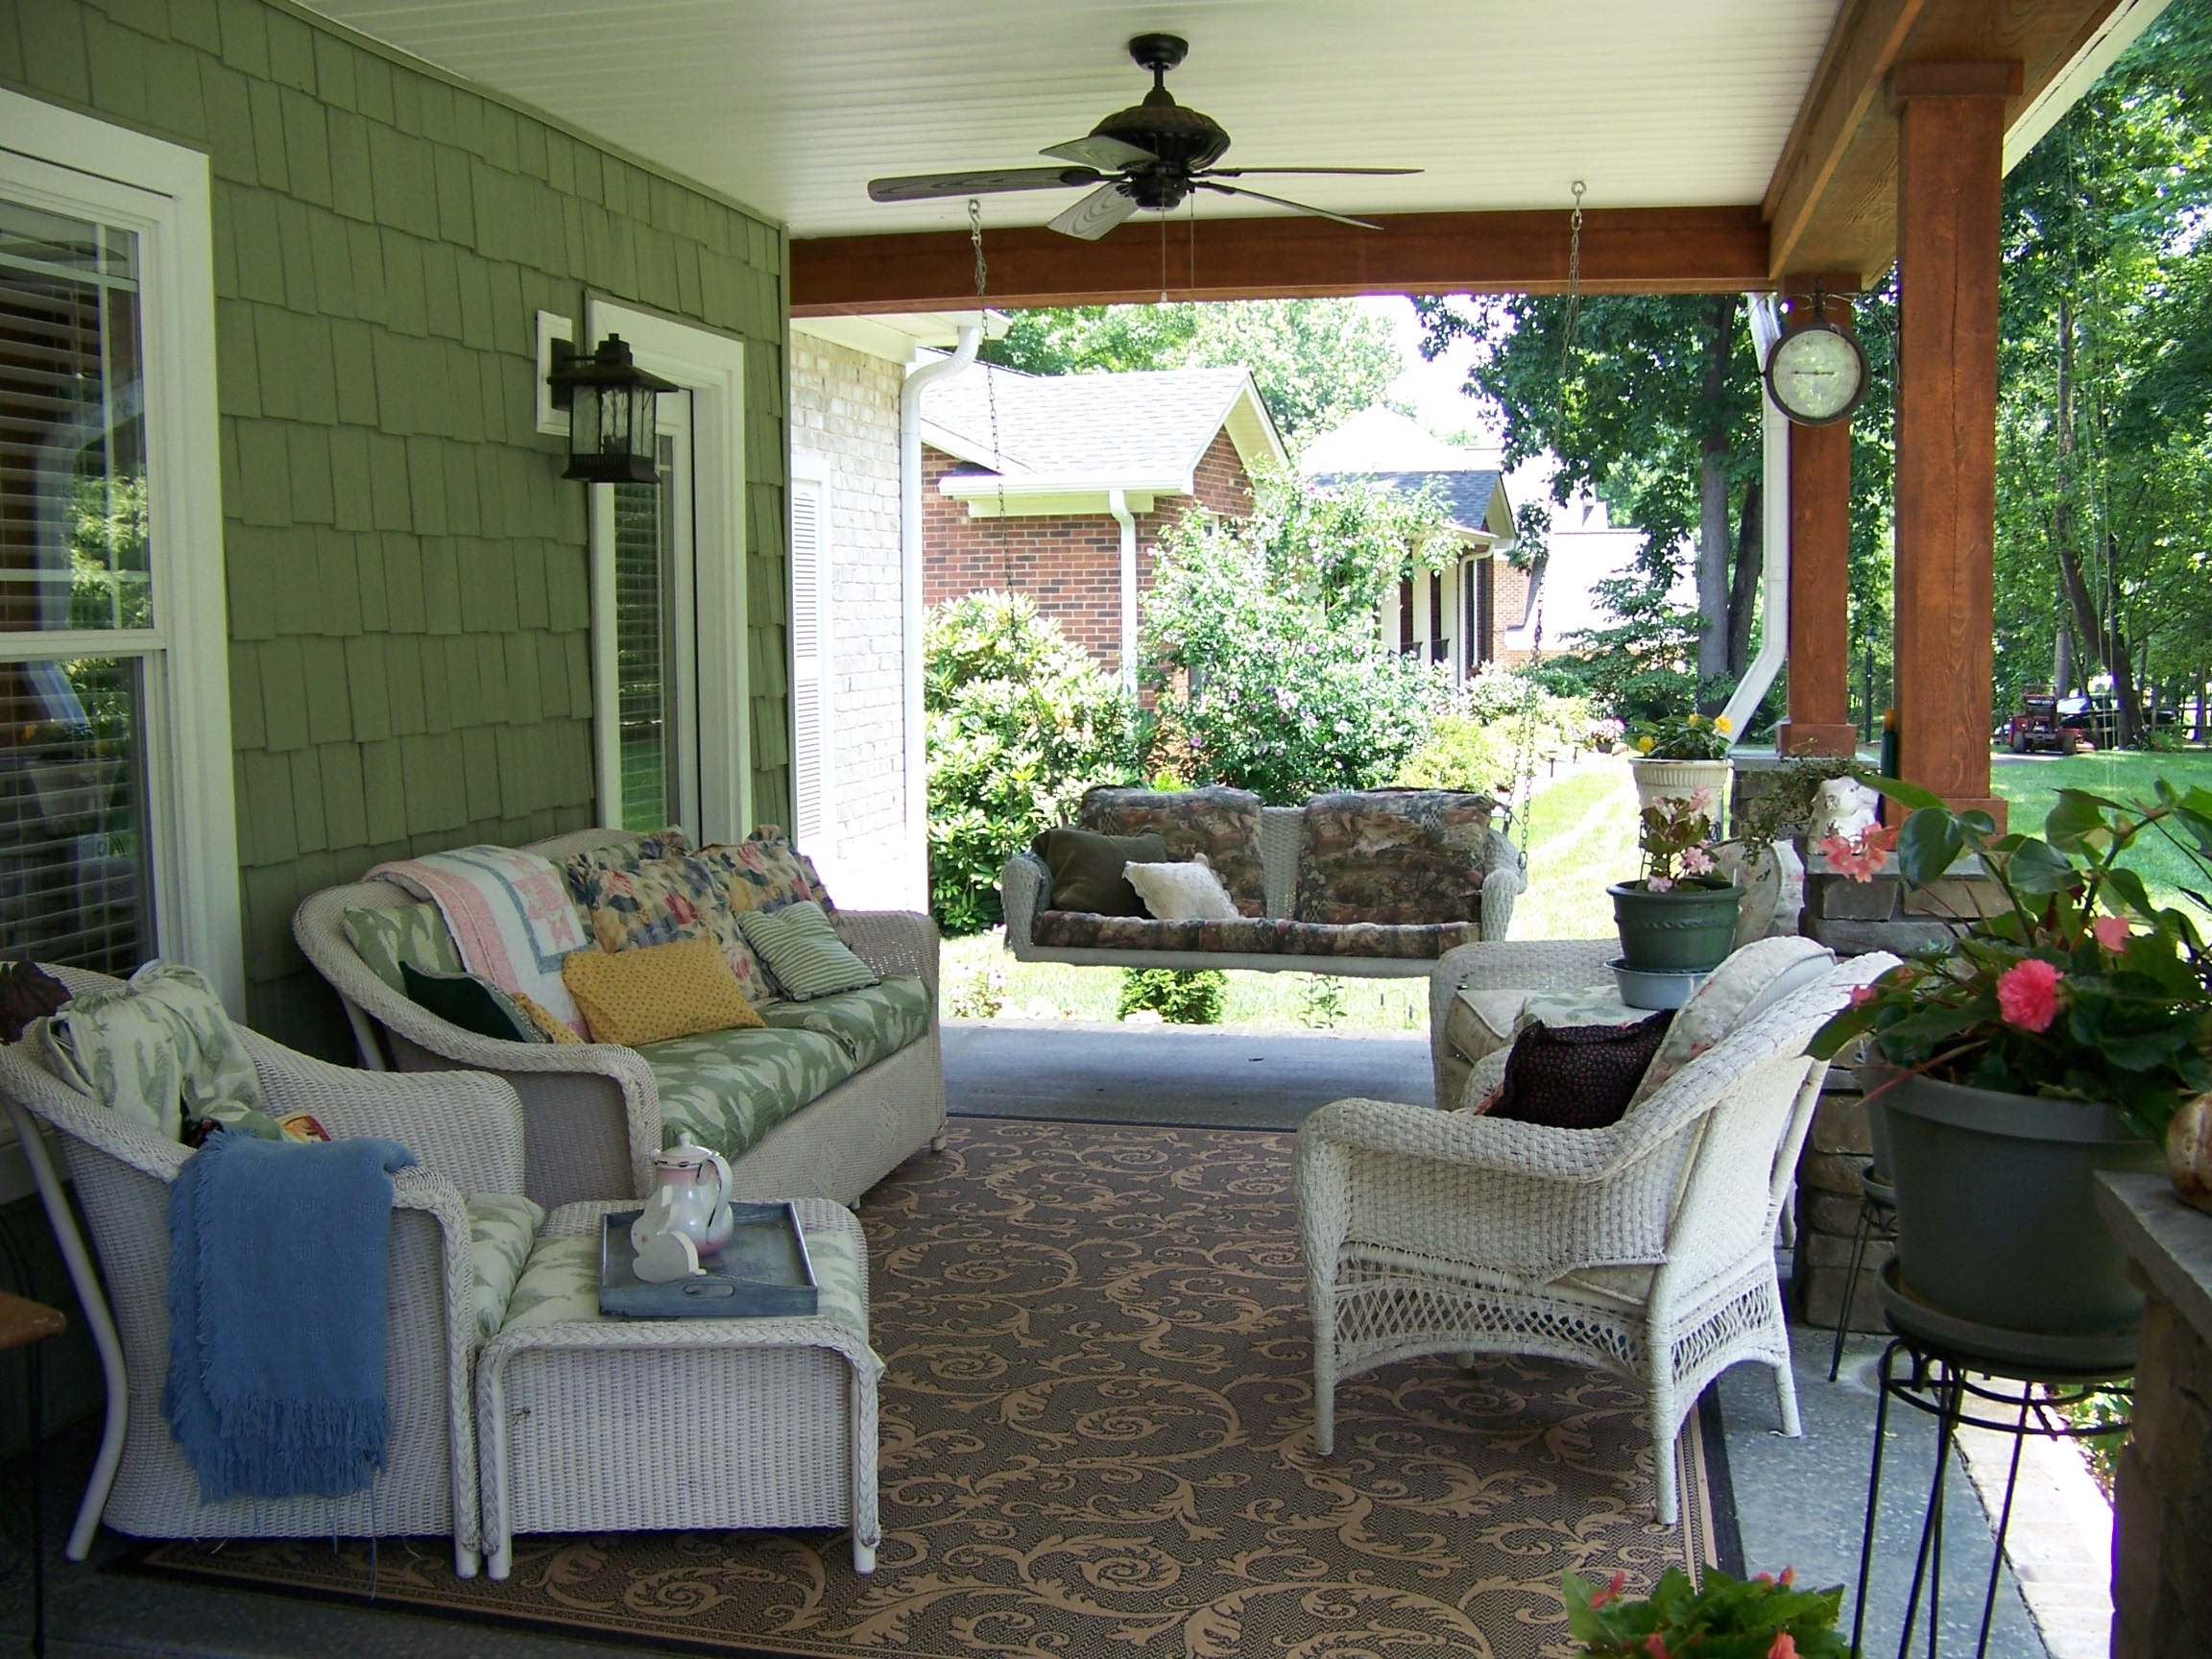 Most Recent Impressive Ceiling Fan Over White Porch Sets On Brown Floral Themes For Vintage Look Outdoor Ceiling Fans (View 7 of 20)